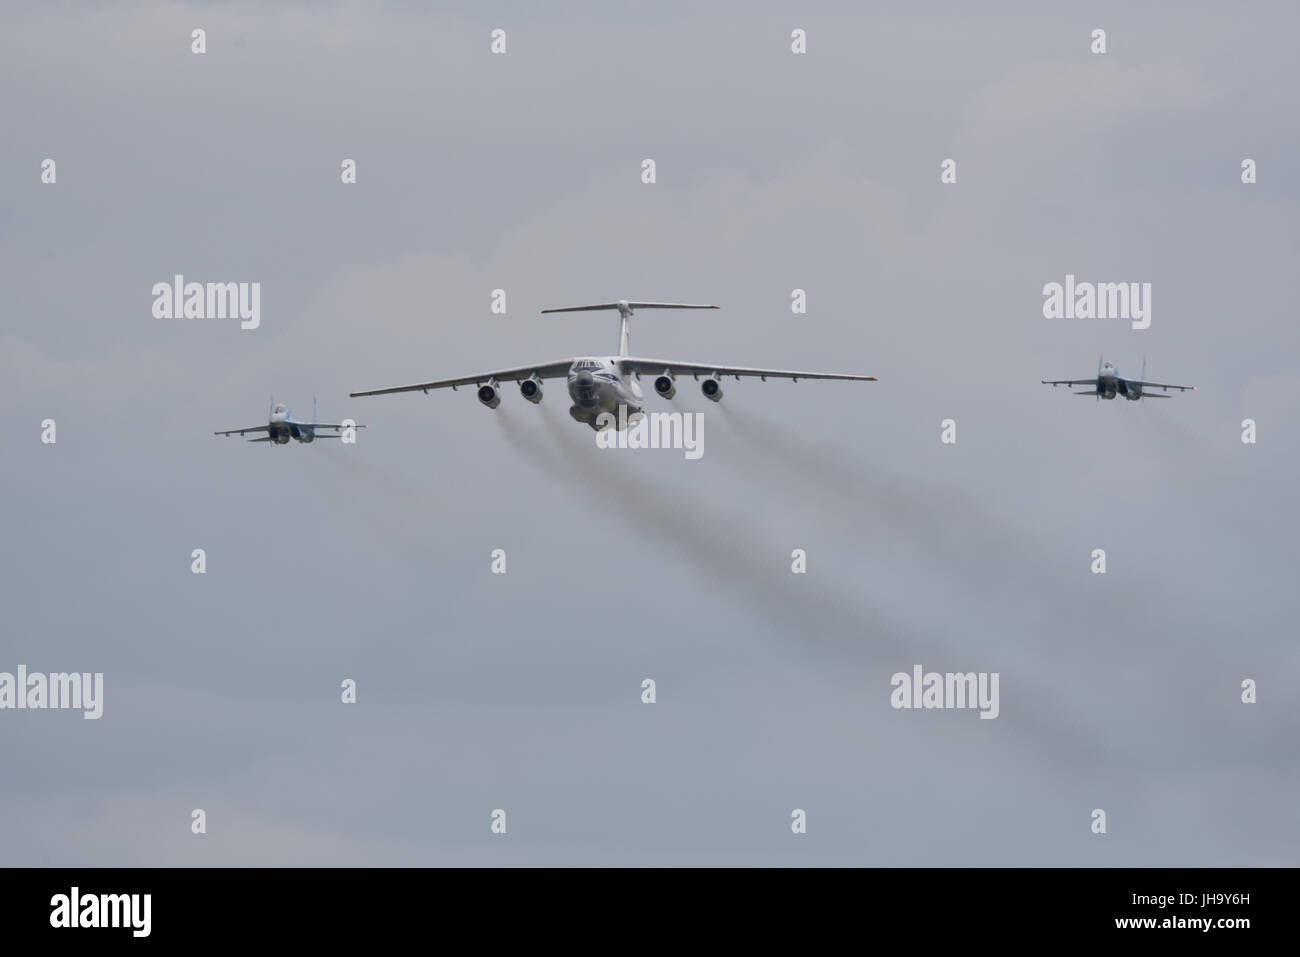 RAF Fairford hosts the Royal International Air Tattoo. Sukhoi Su-27 fighters and a Ilyushin Il-76 transport aircraft - Stock Image